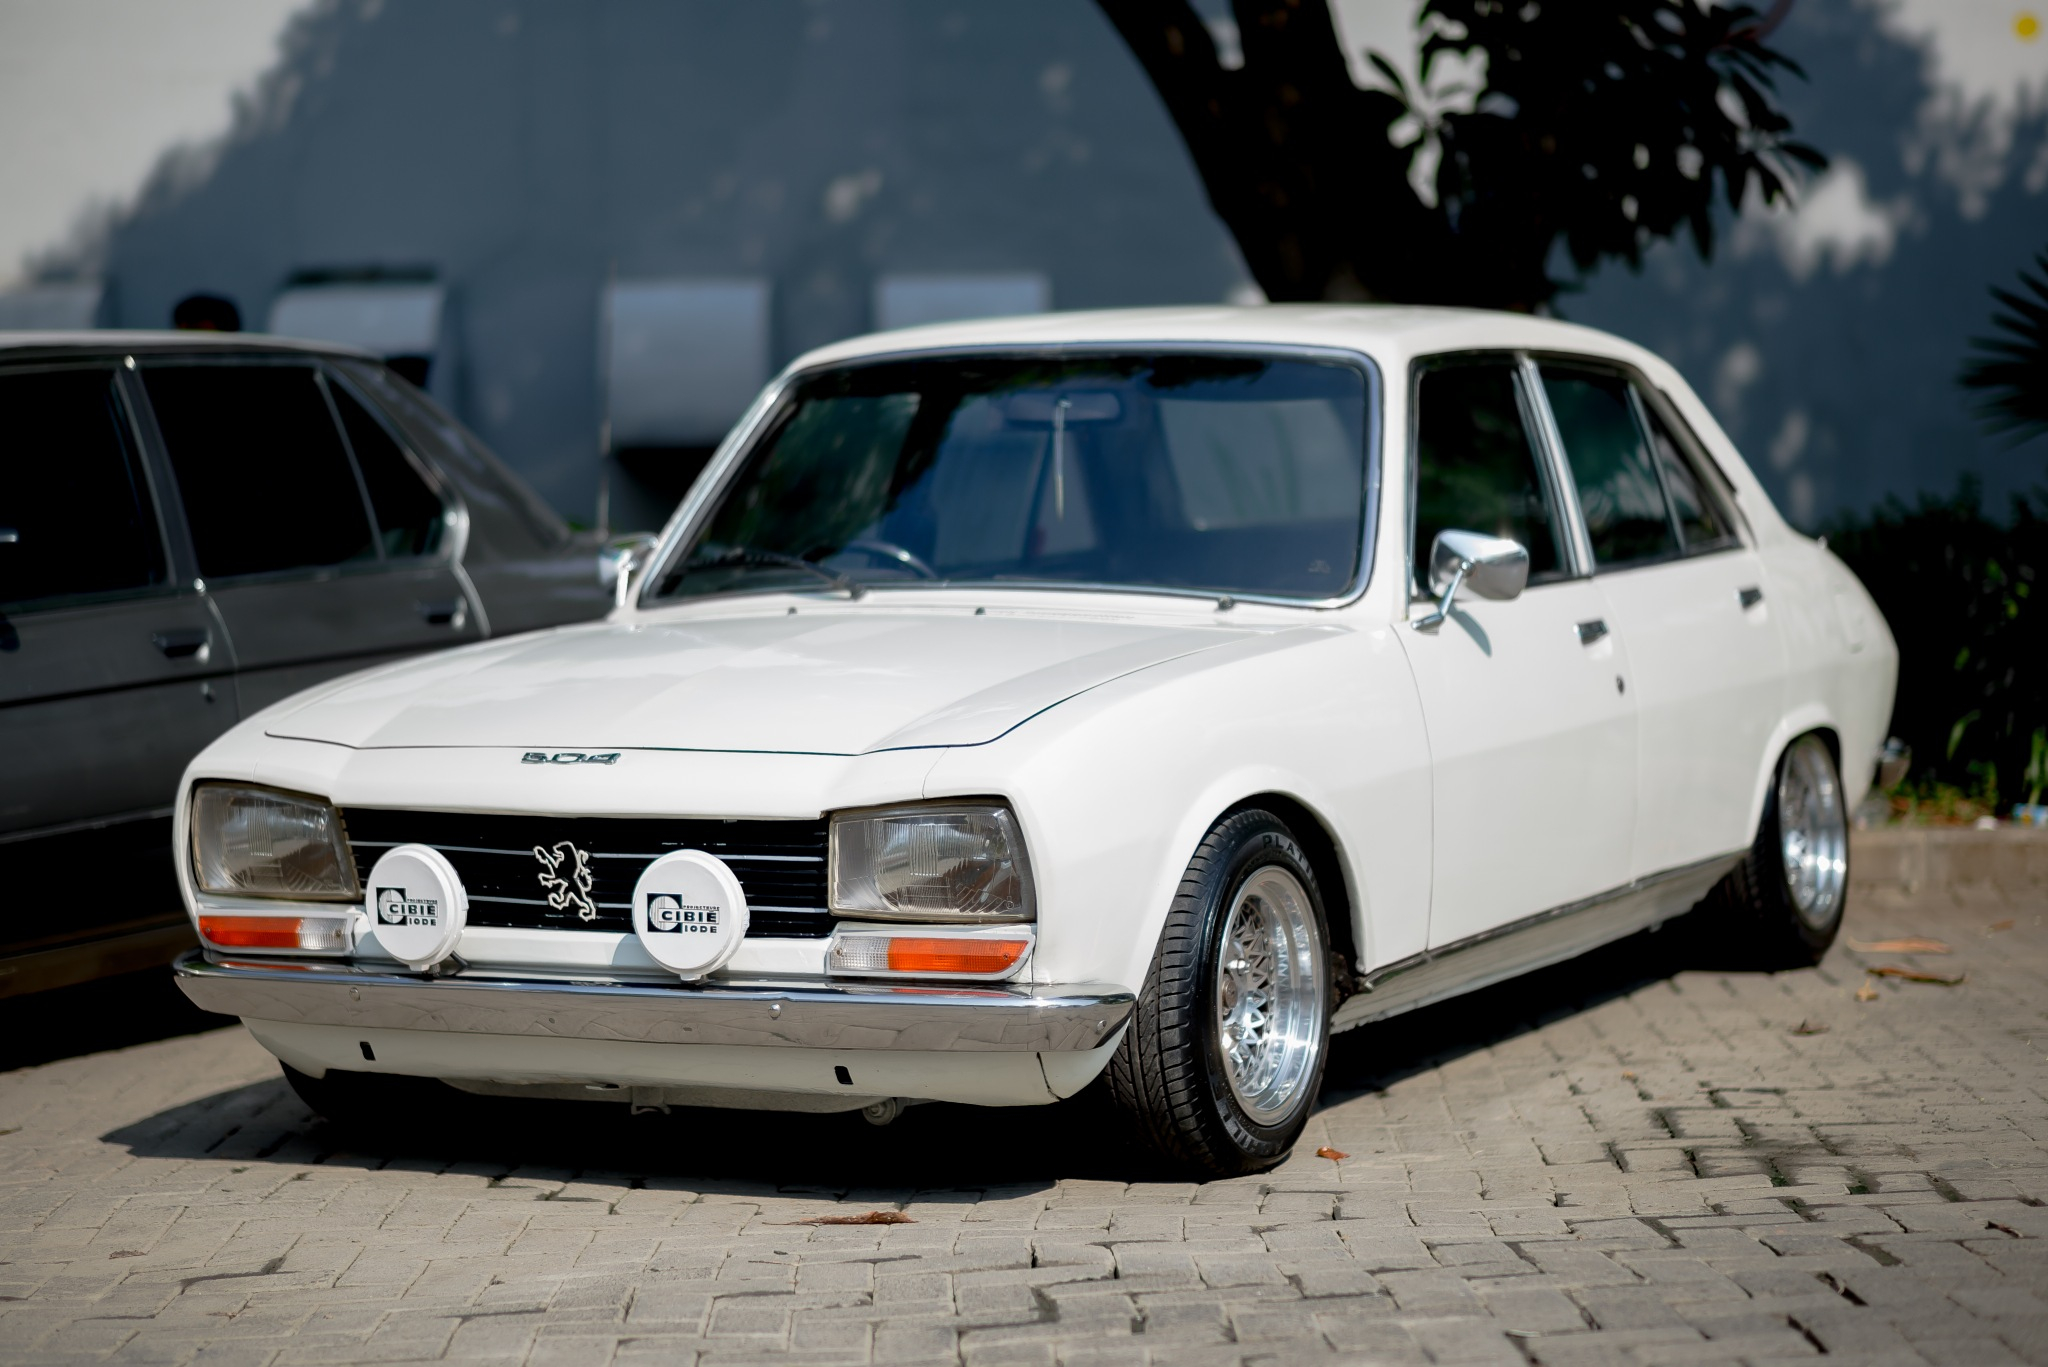 Adorable French Mate: Peugeot 504 by gettinlow